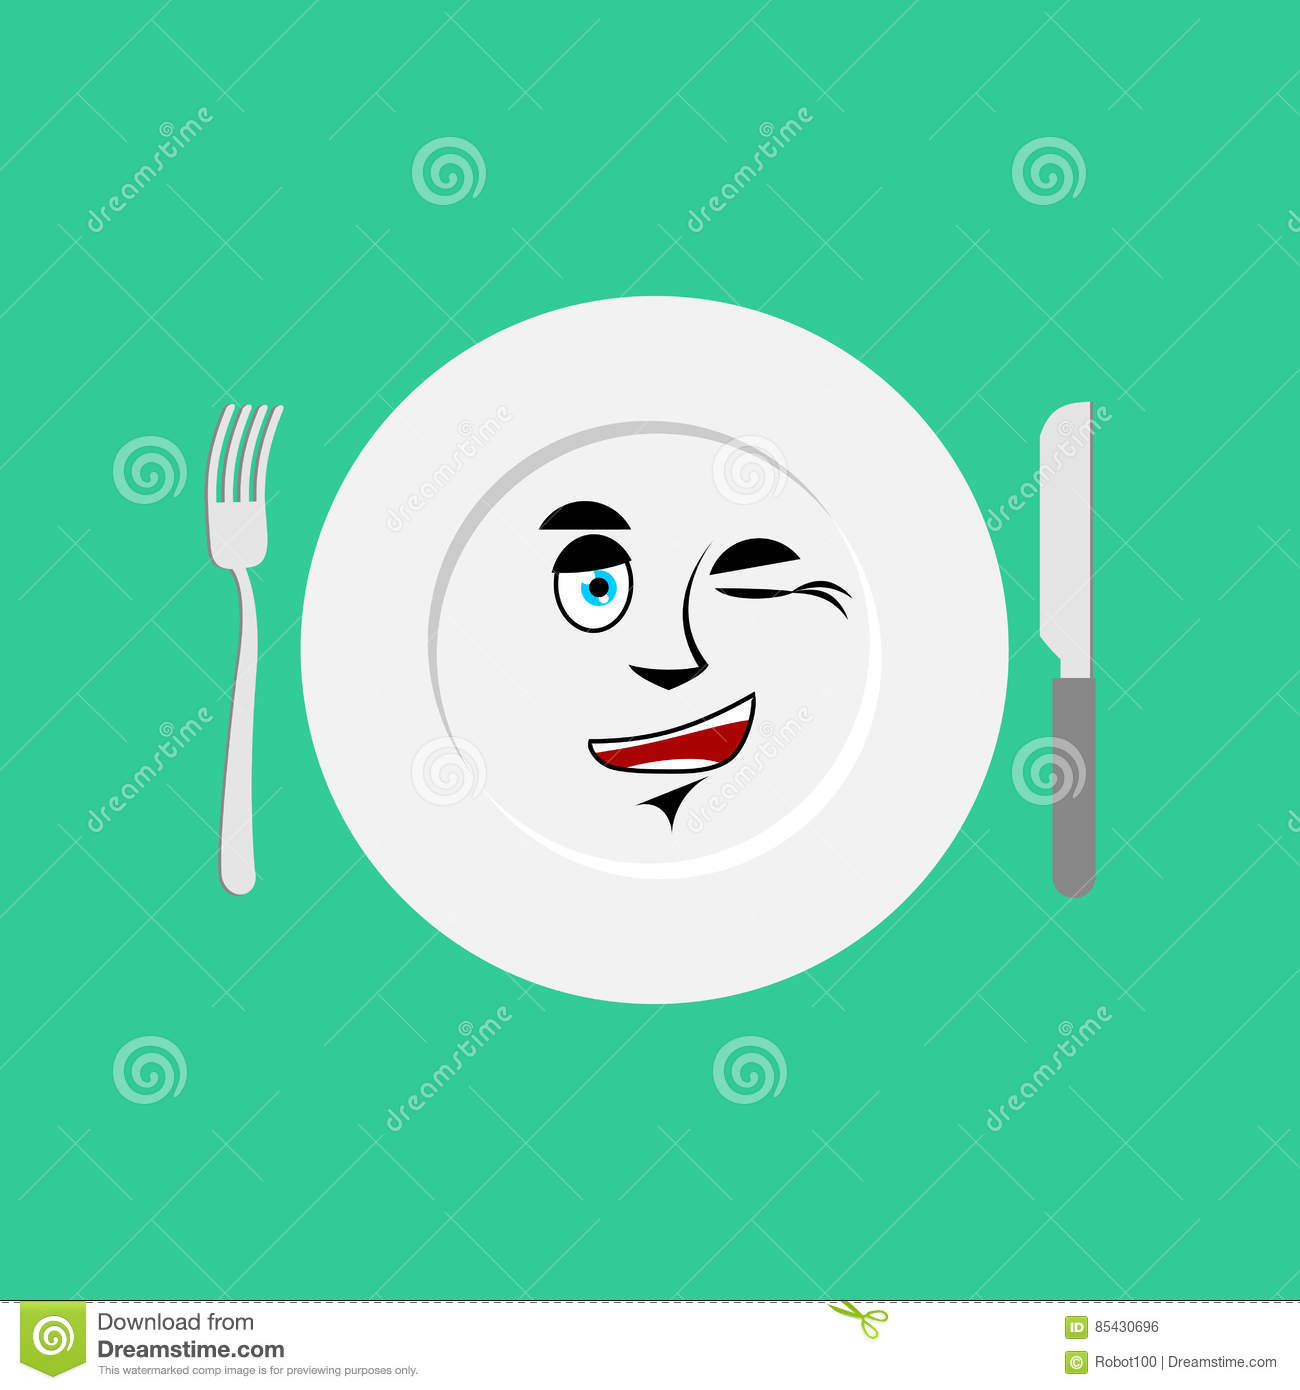 Plate Winks Emoji  Empty Dish Isolated Cheerful Emotion Stock Vector